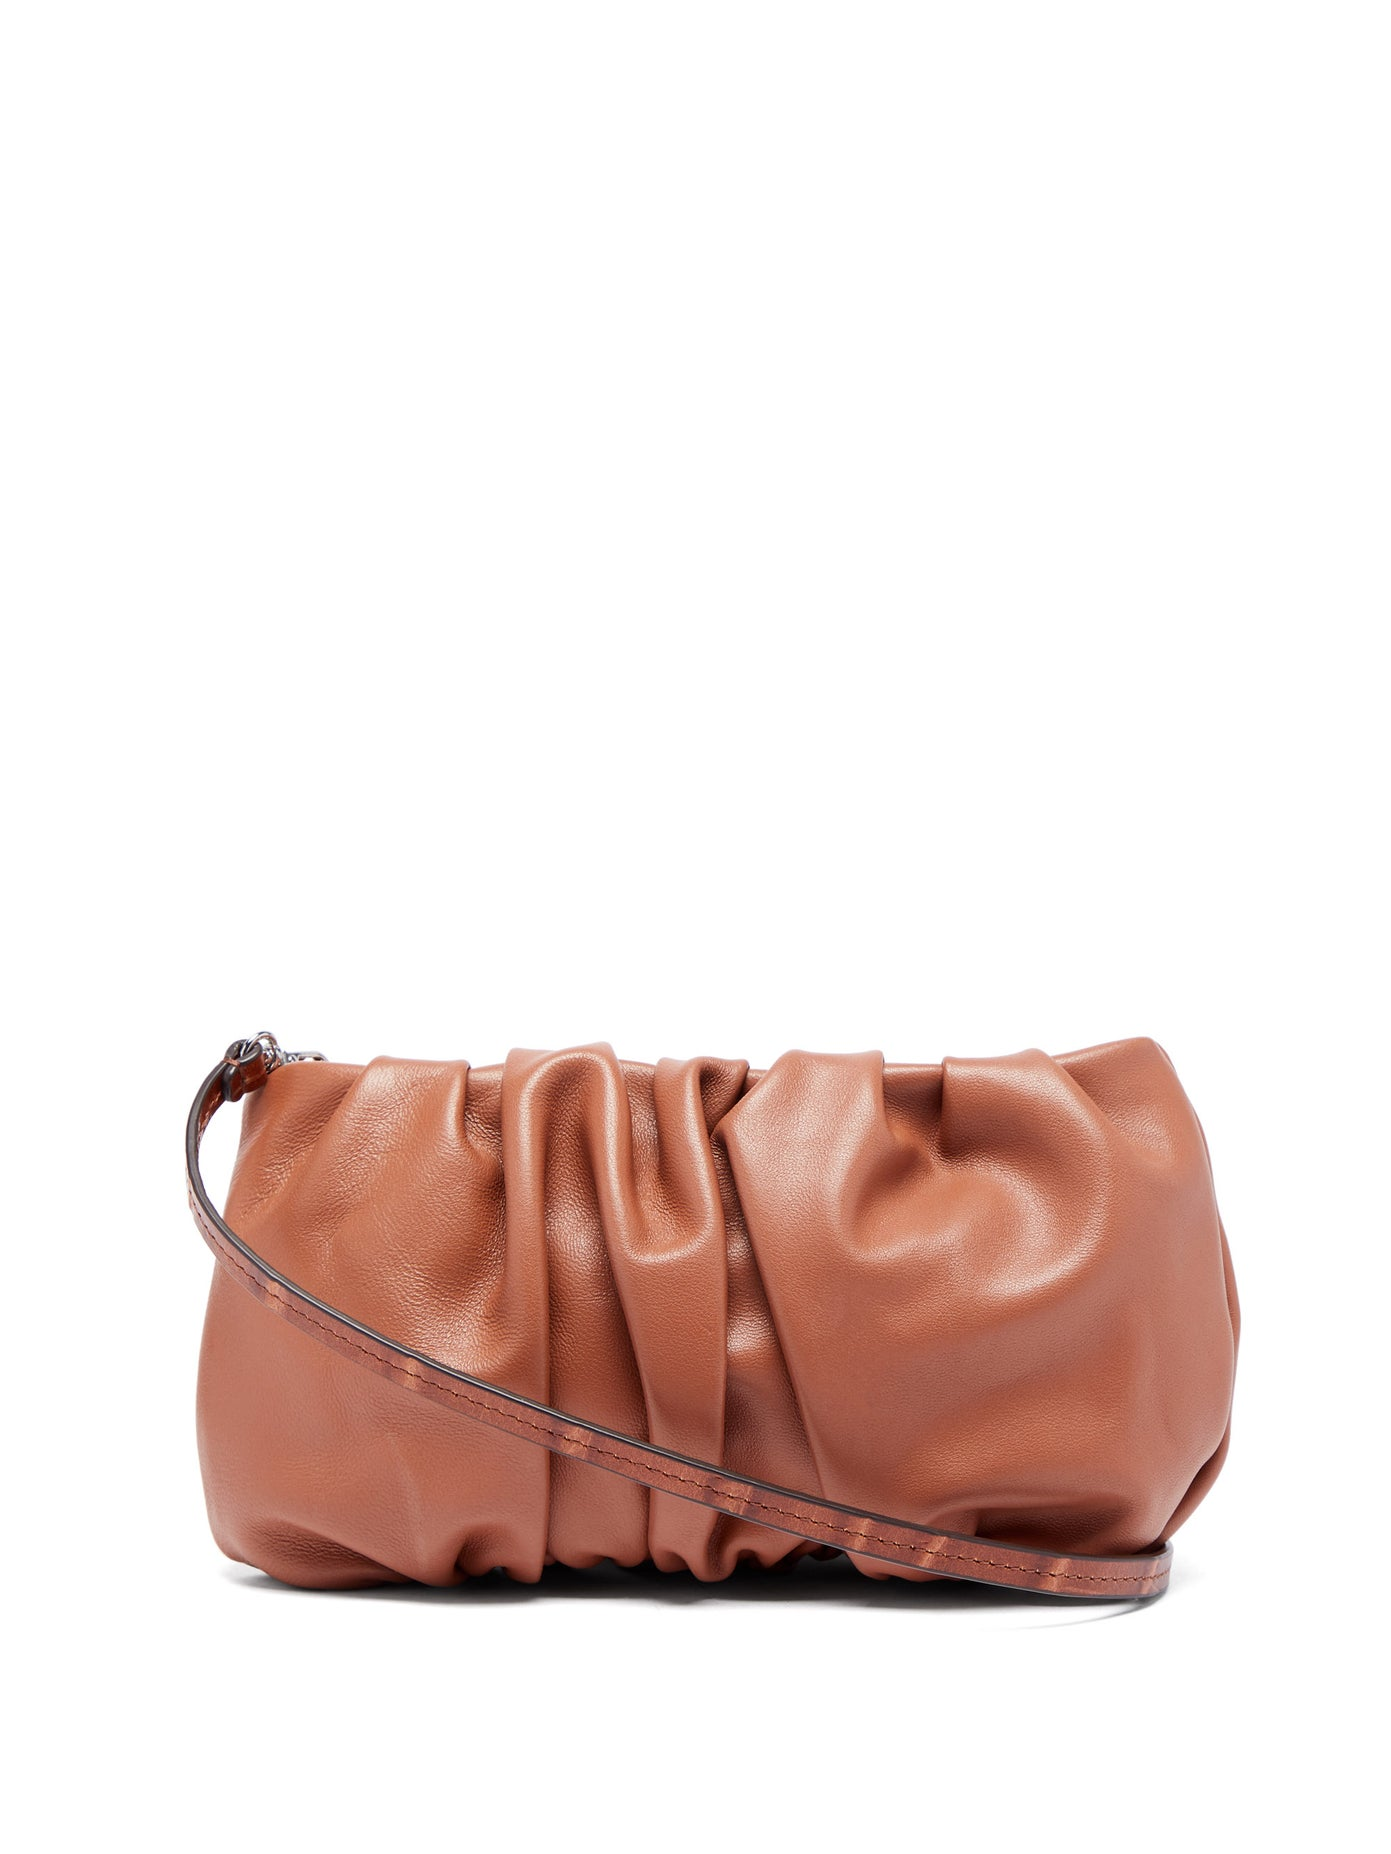 staud-bean-leather-shoulder-bag-tan